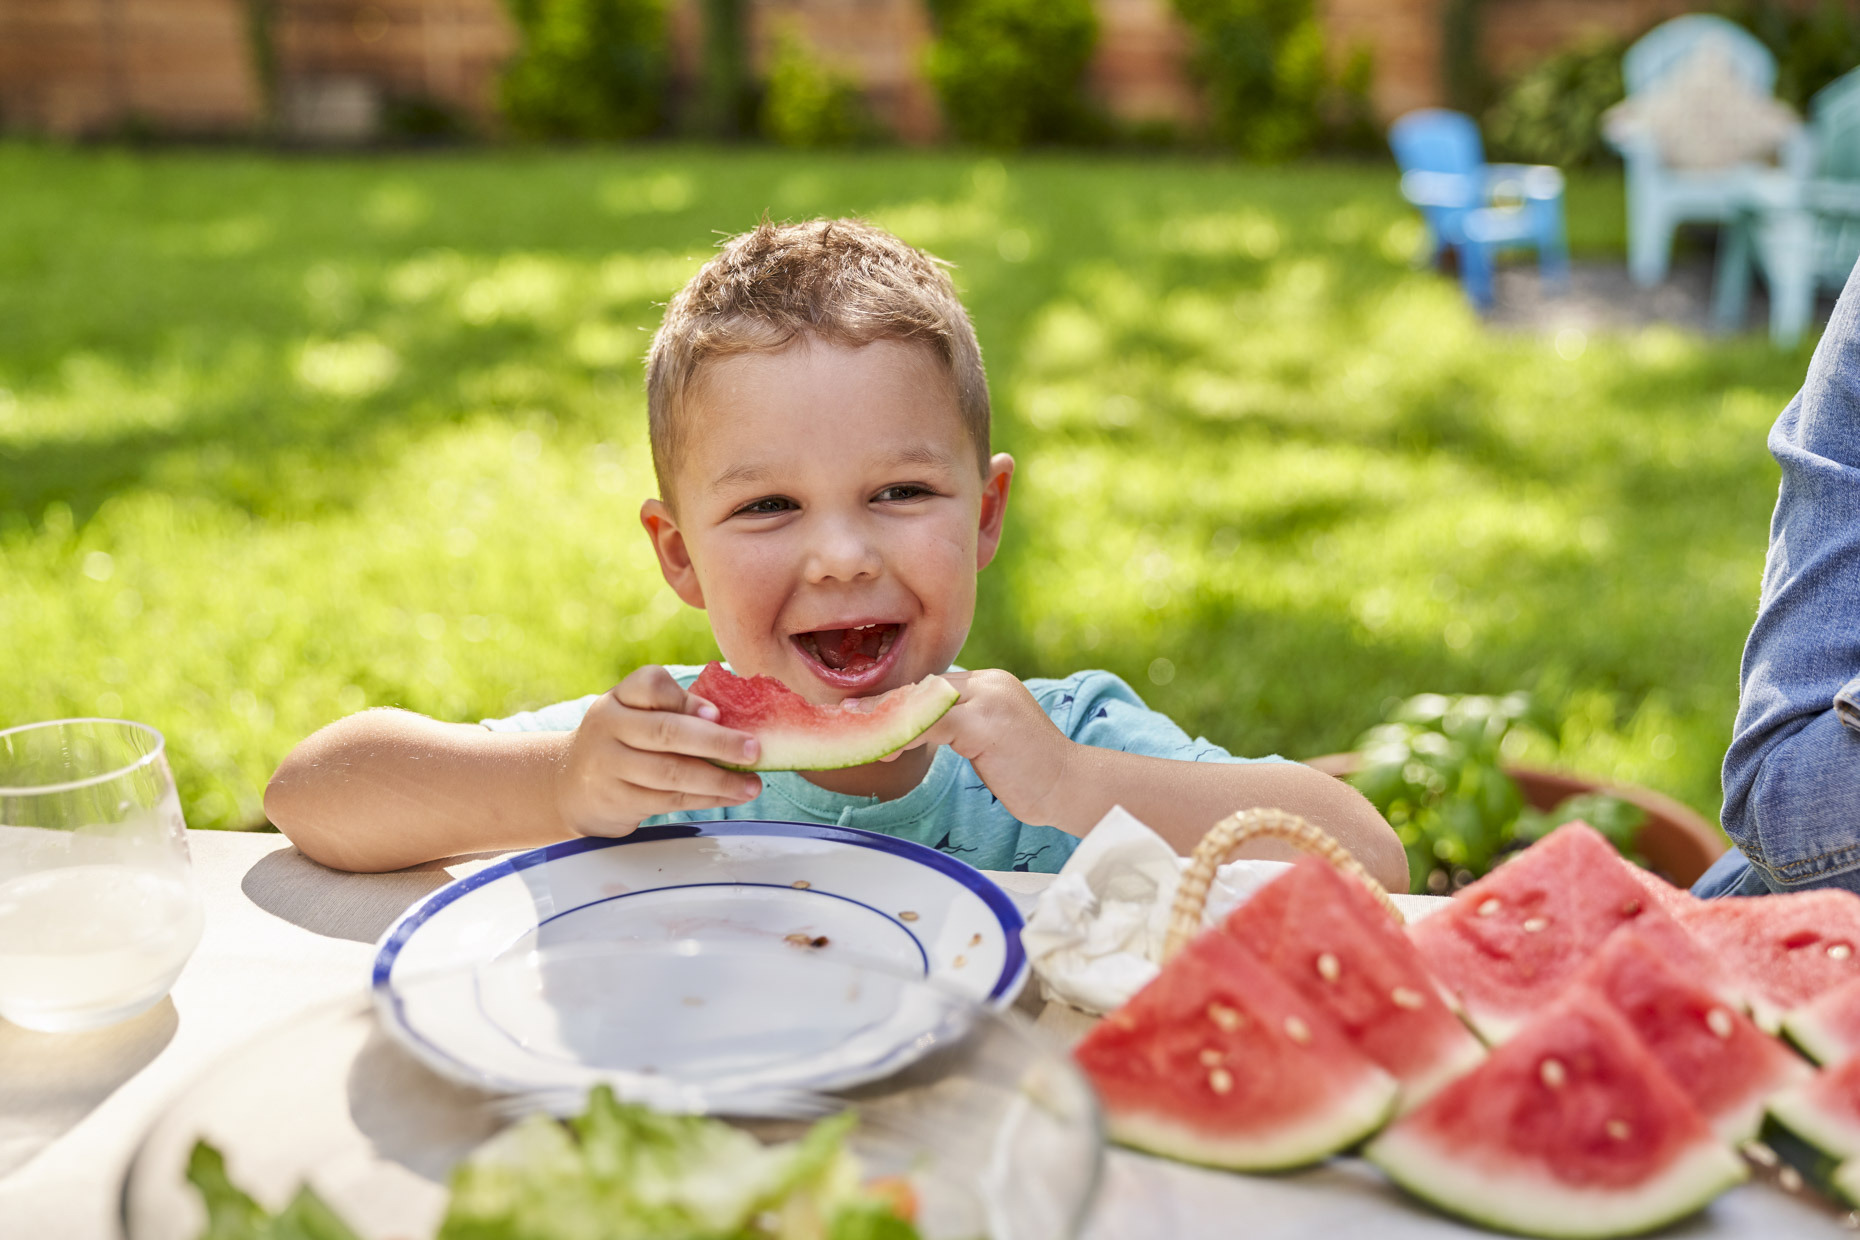 Happy boy eating watermelon at picnic